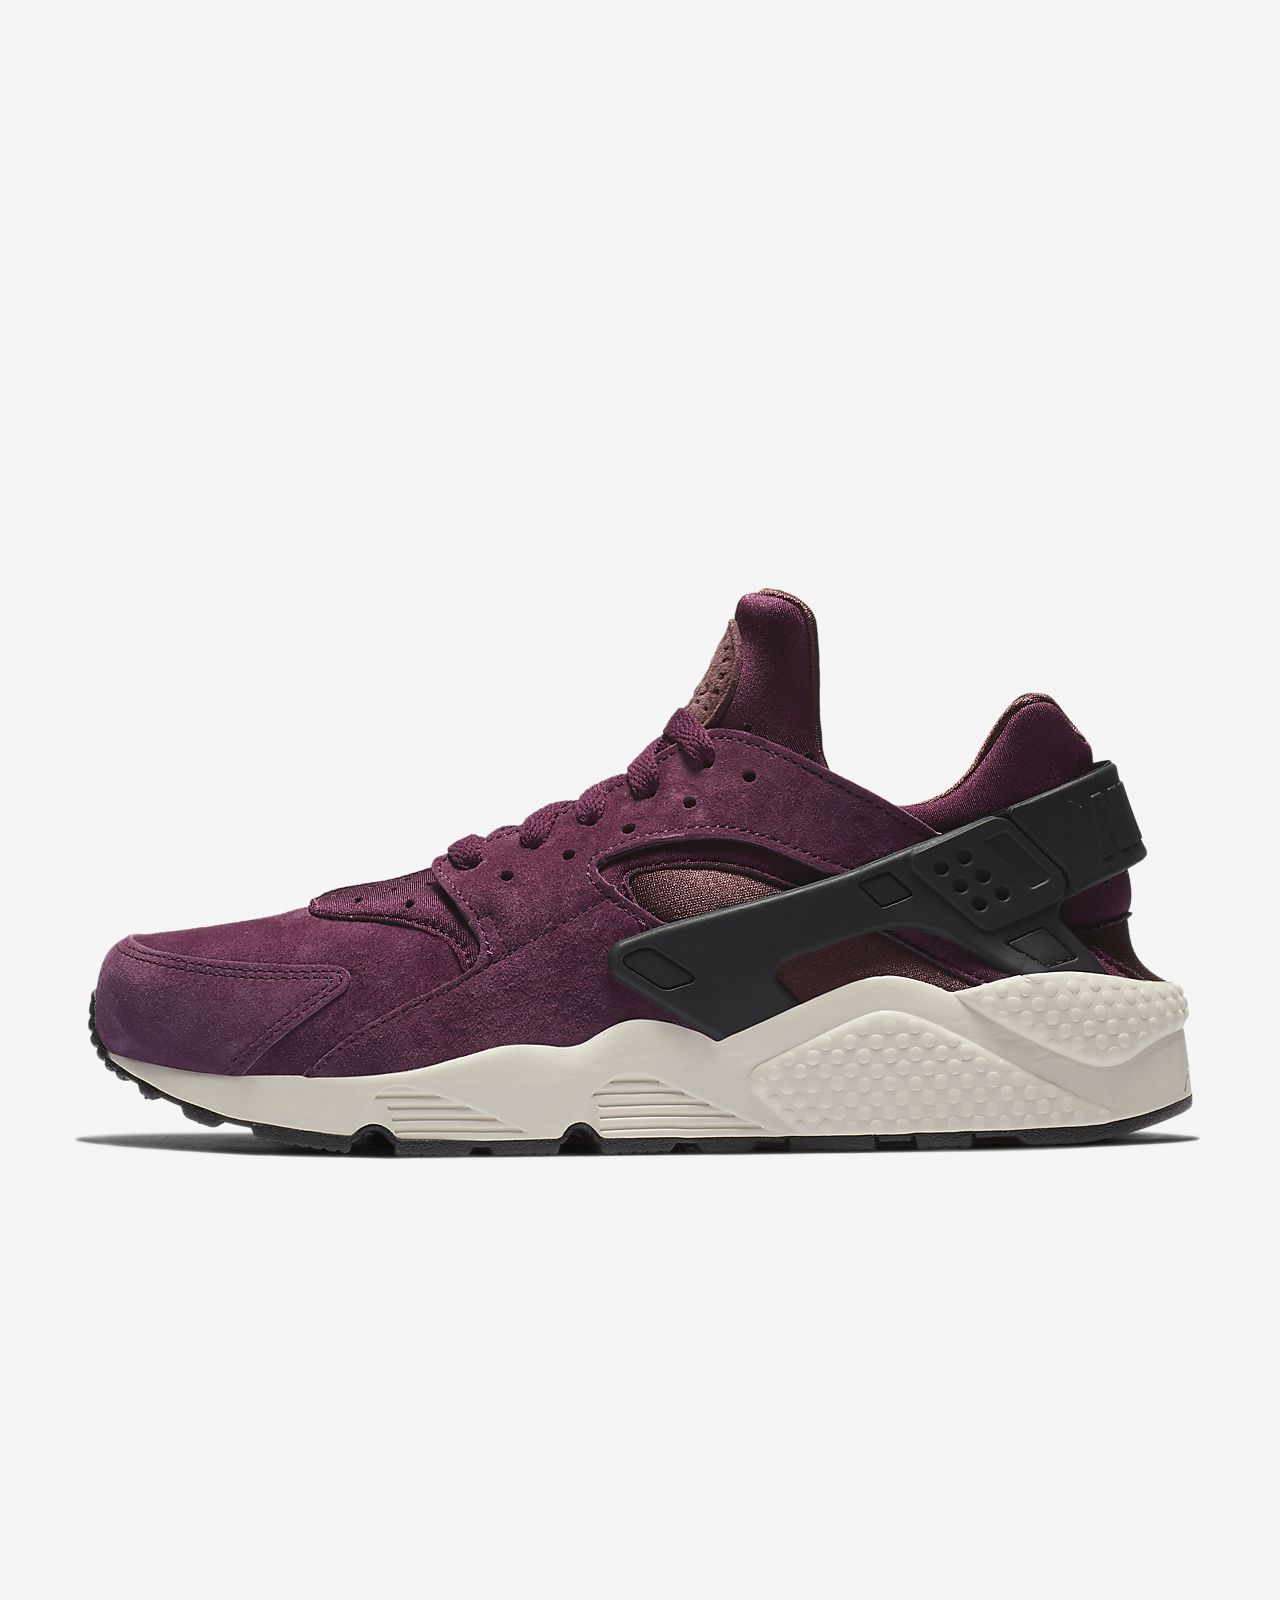 9fb375ed3fea7 Nike Air Huarache Premium Men s Shoe. Nike.com